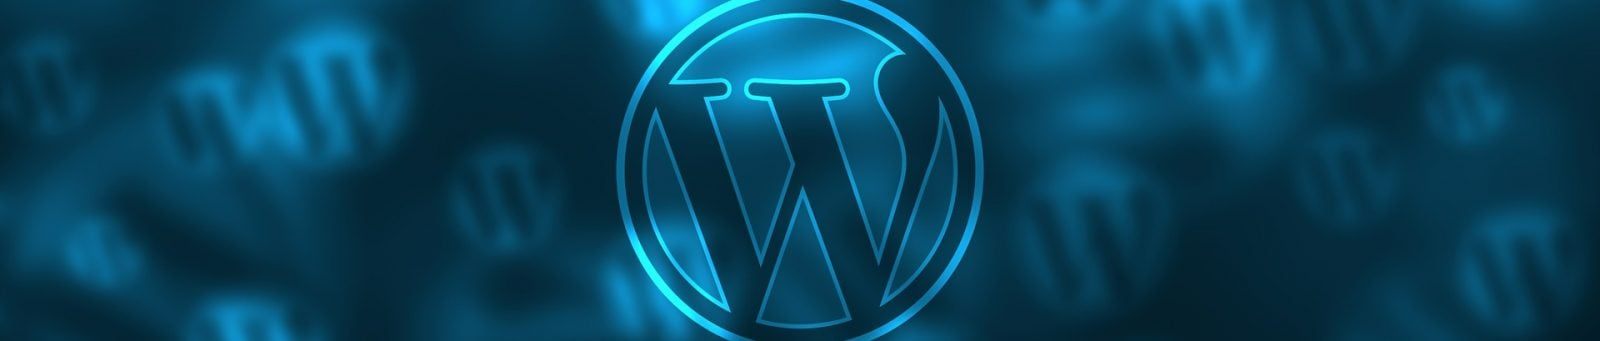 "WordPress 4.6 ""Pepper"" Update"